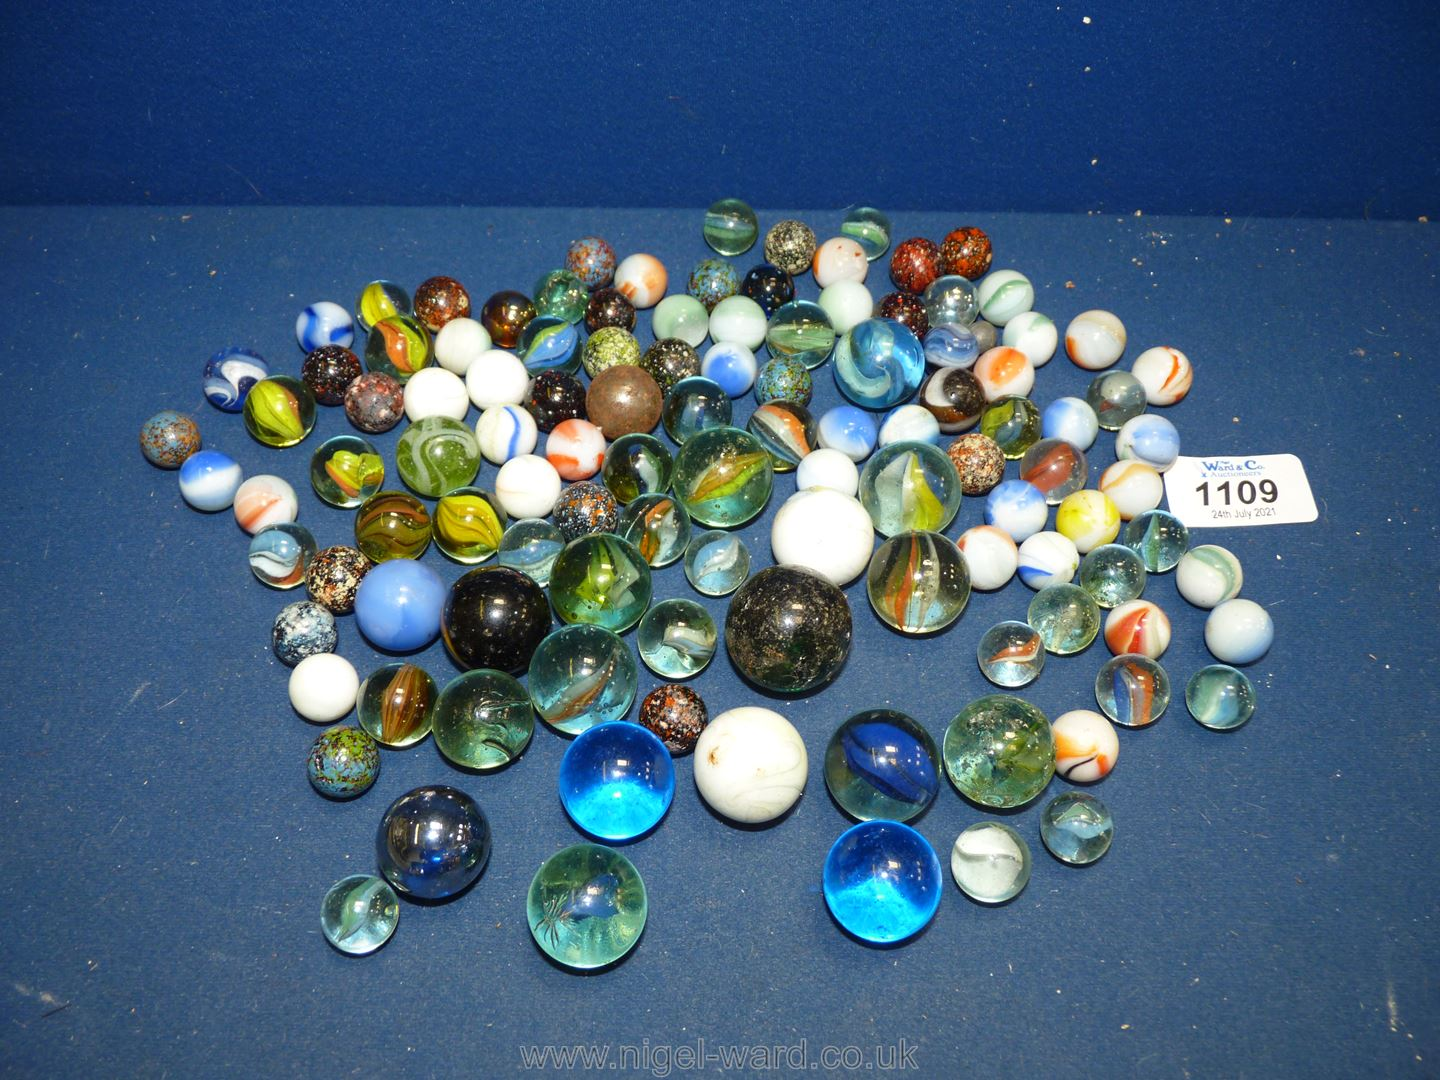 A quantity of marbles including large size, mottled etc.